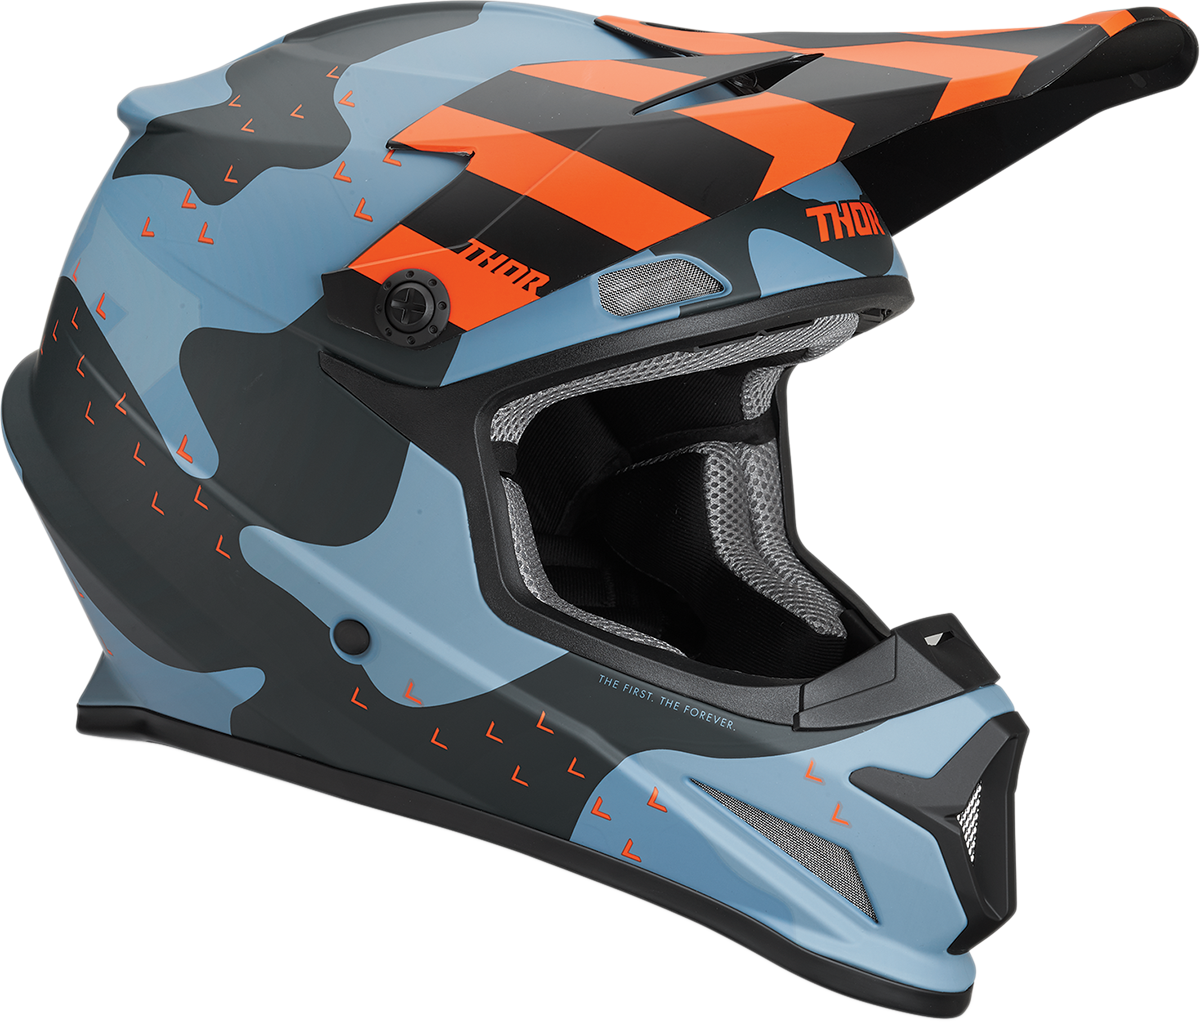 Thor Unisex Mosser Sector Full Face Offroad Riding Dirt Bike ATV Racing Helmet